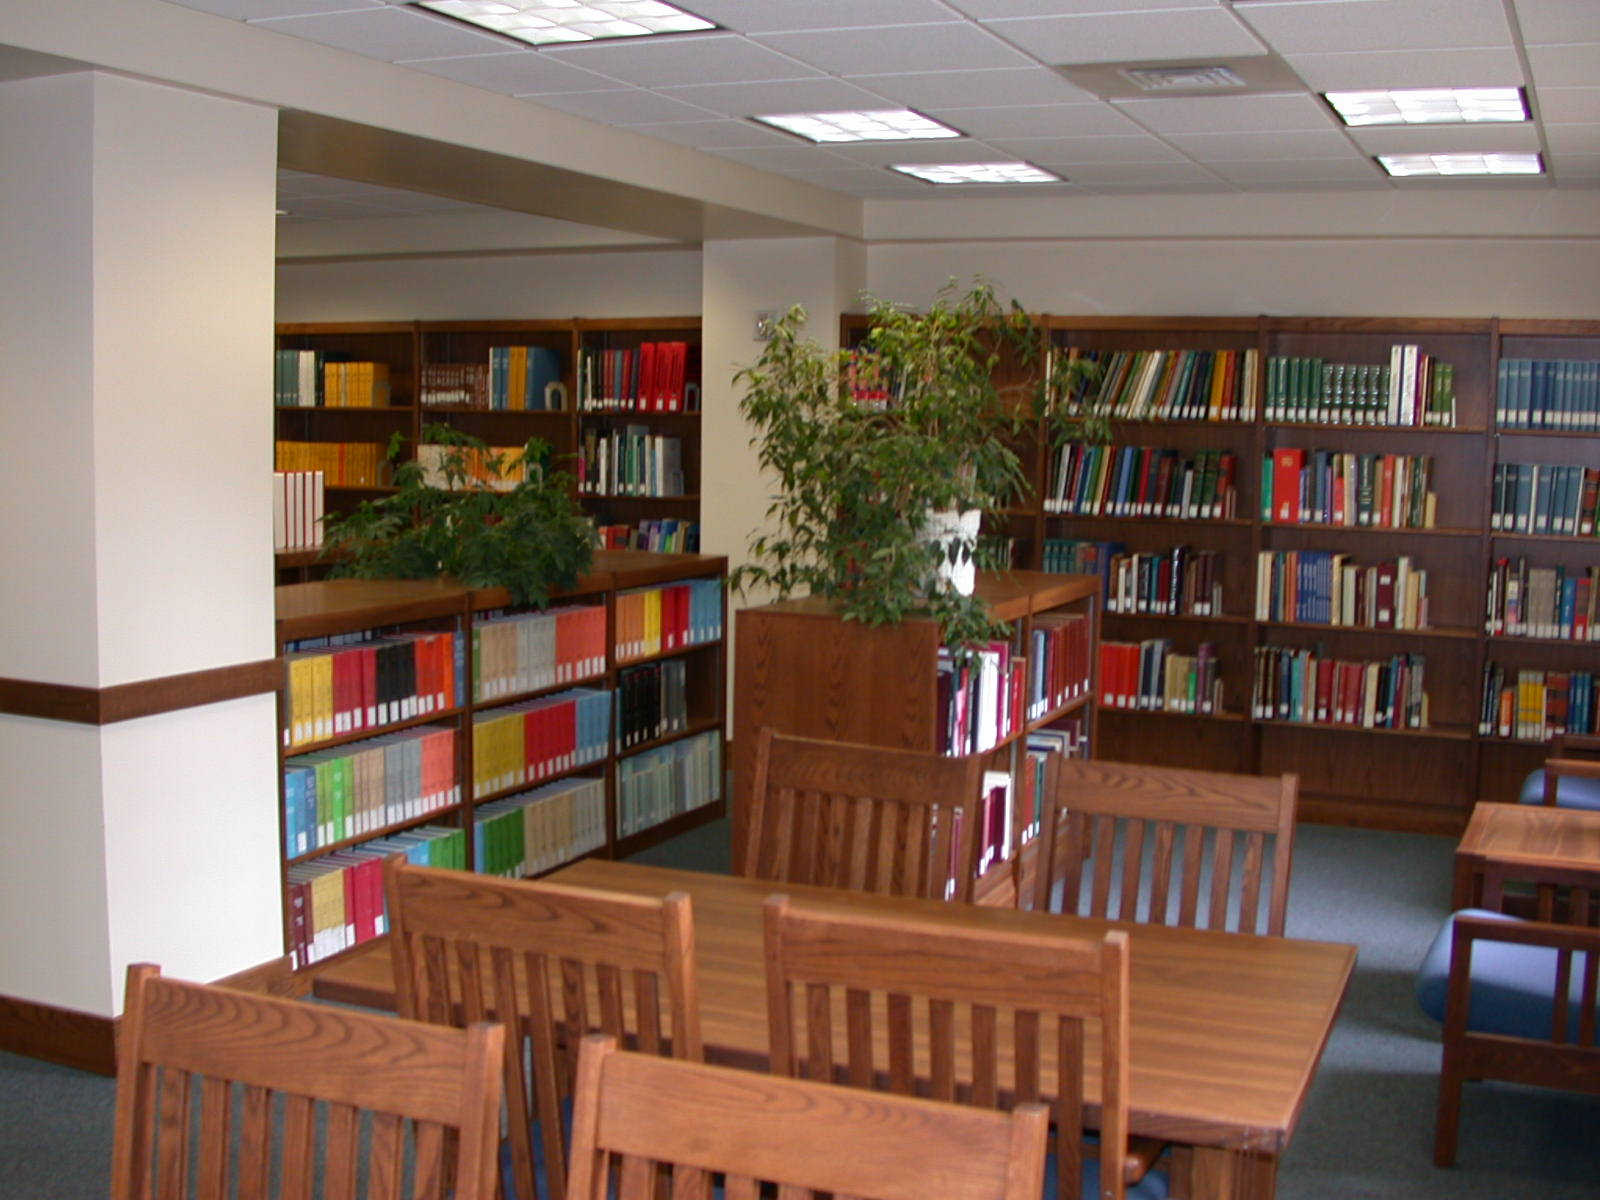 Brinkerhoff Geology Library's picture